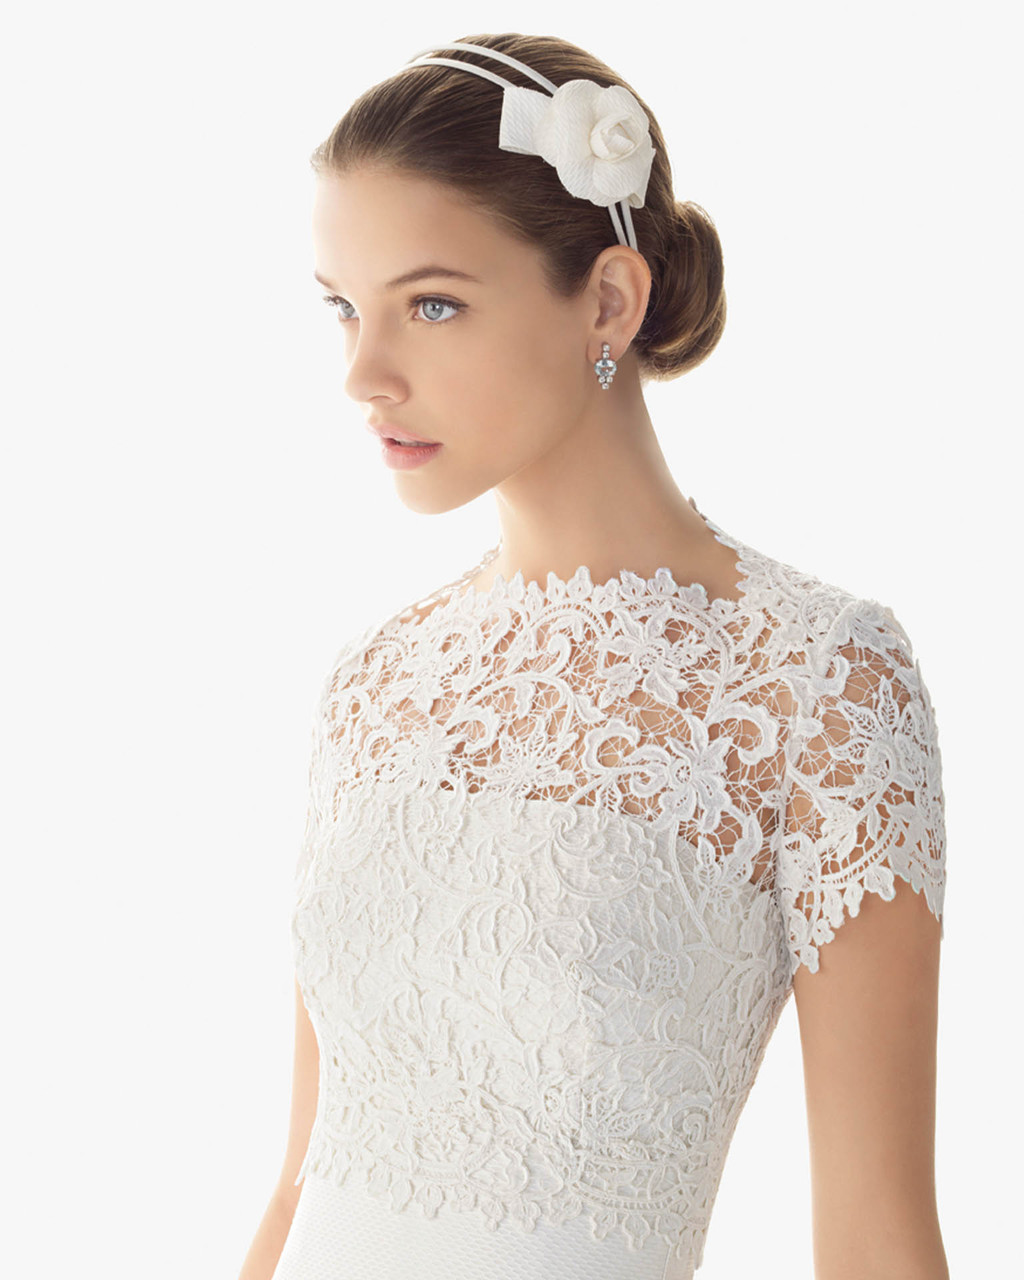 Bridal Top to wear over simple wedding dress